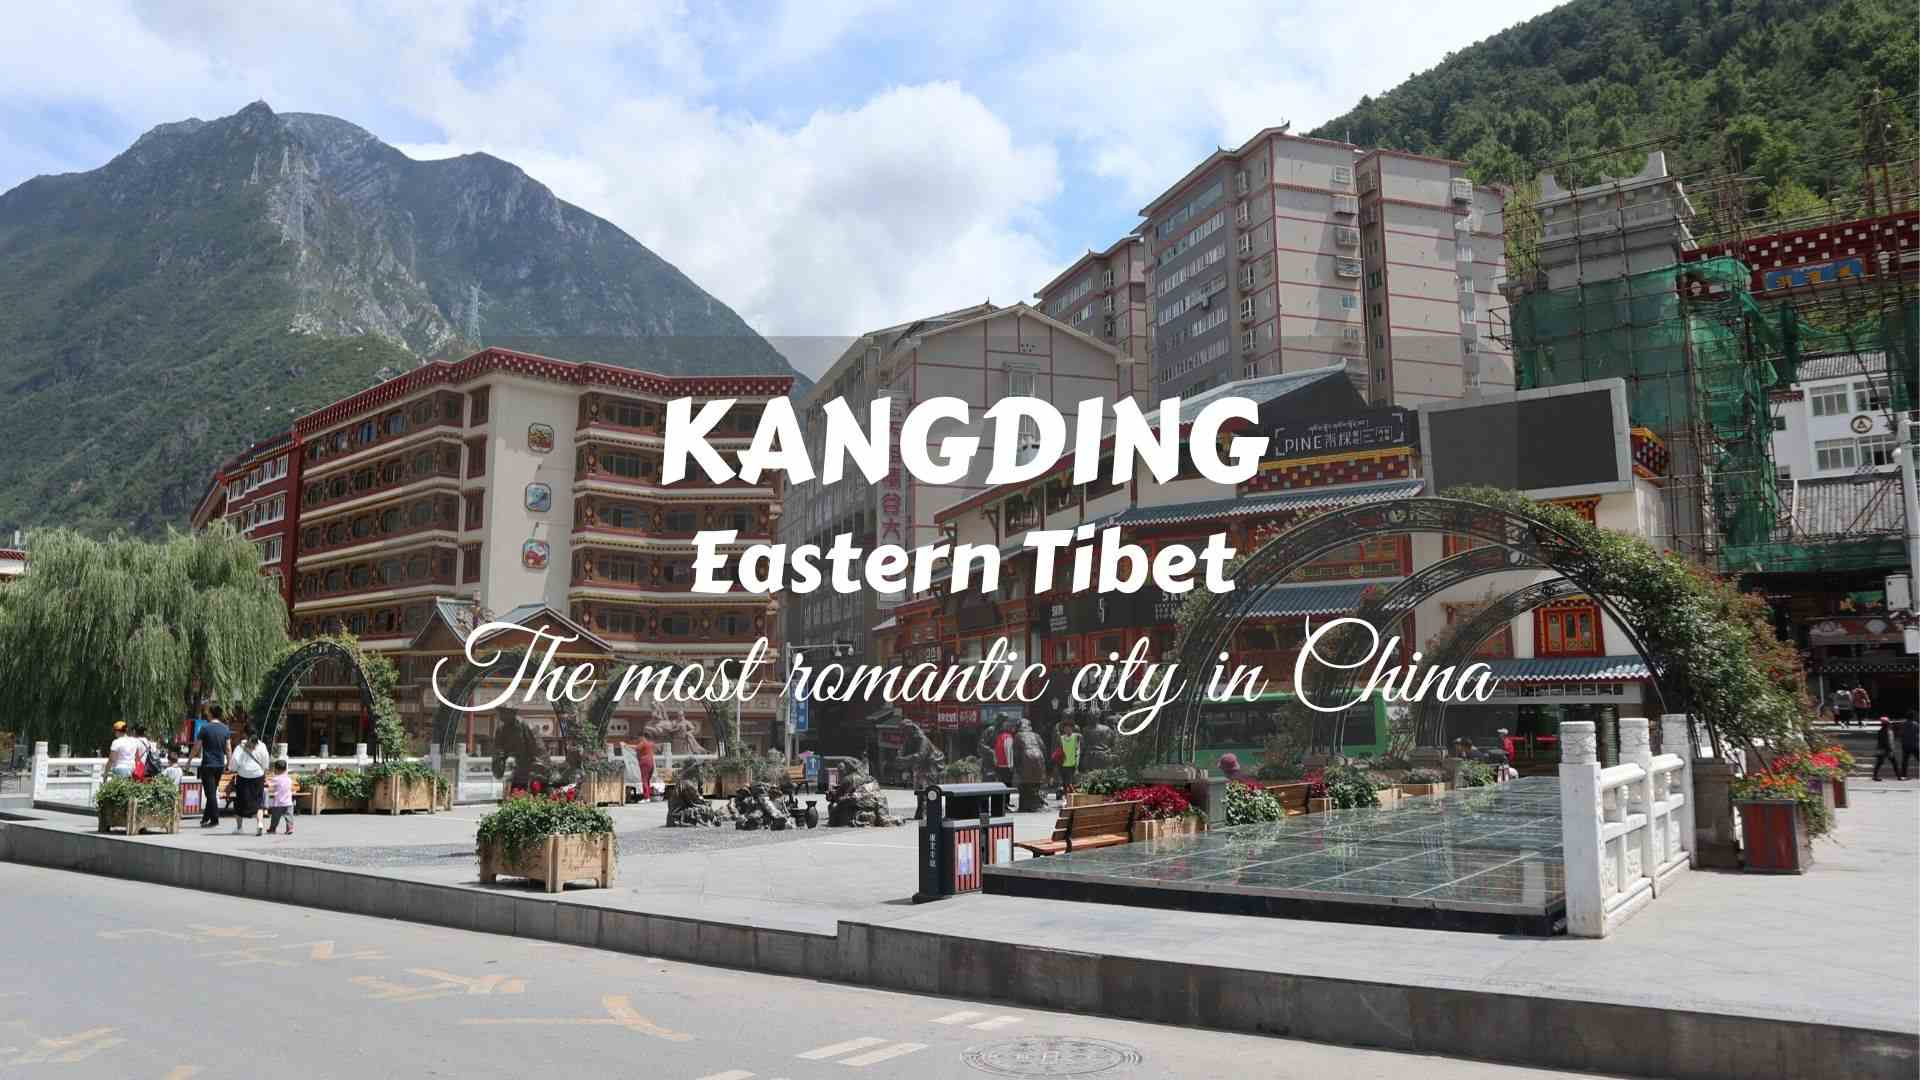 KANGDING- The most romantic city in China